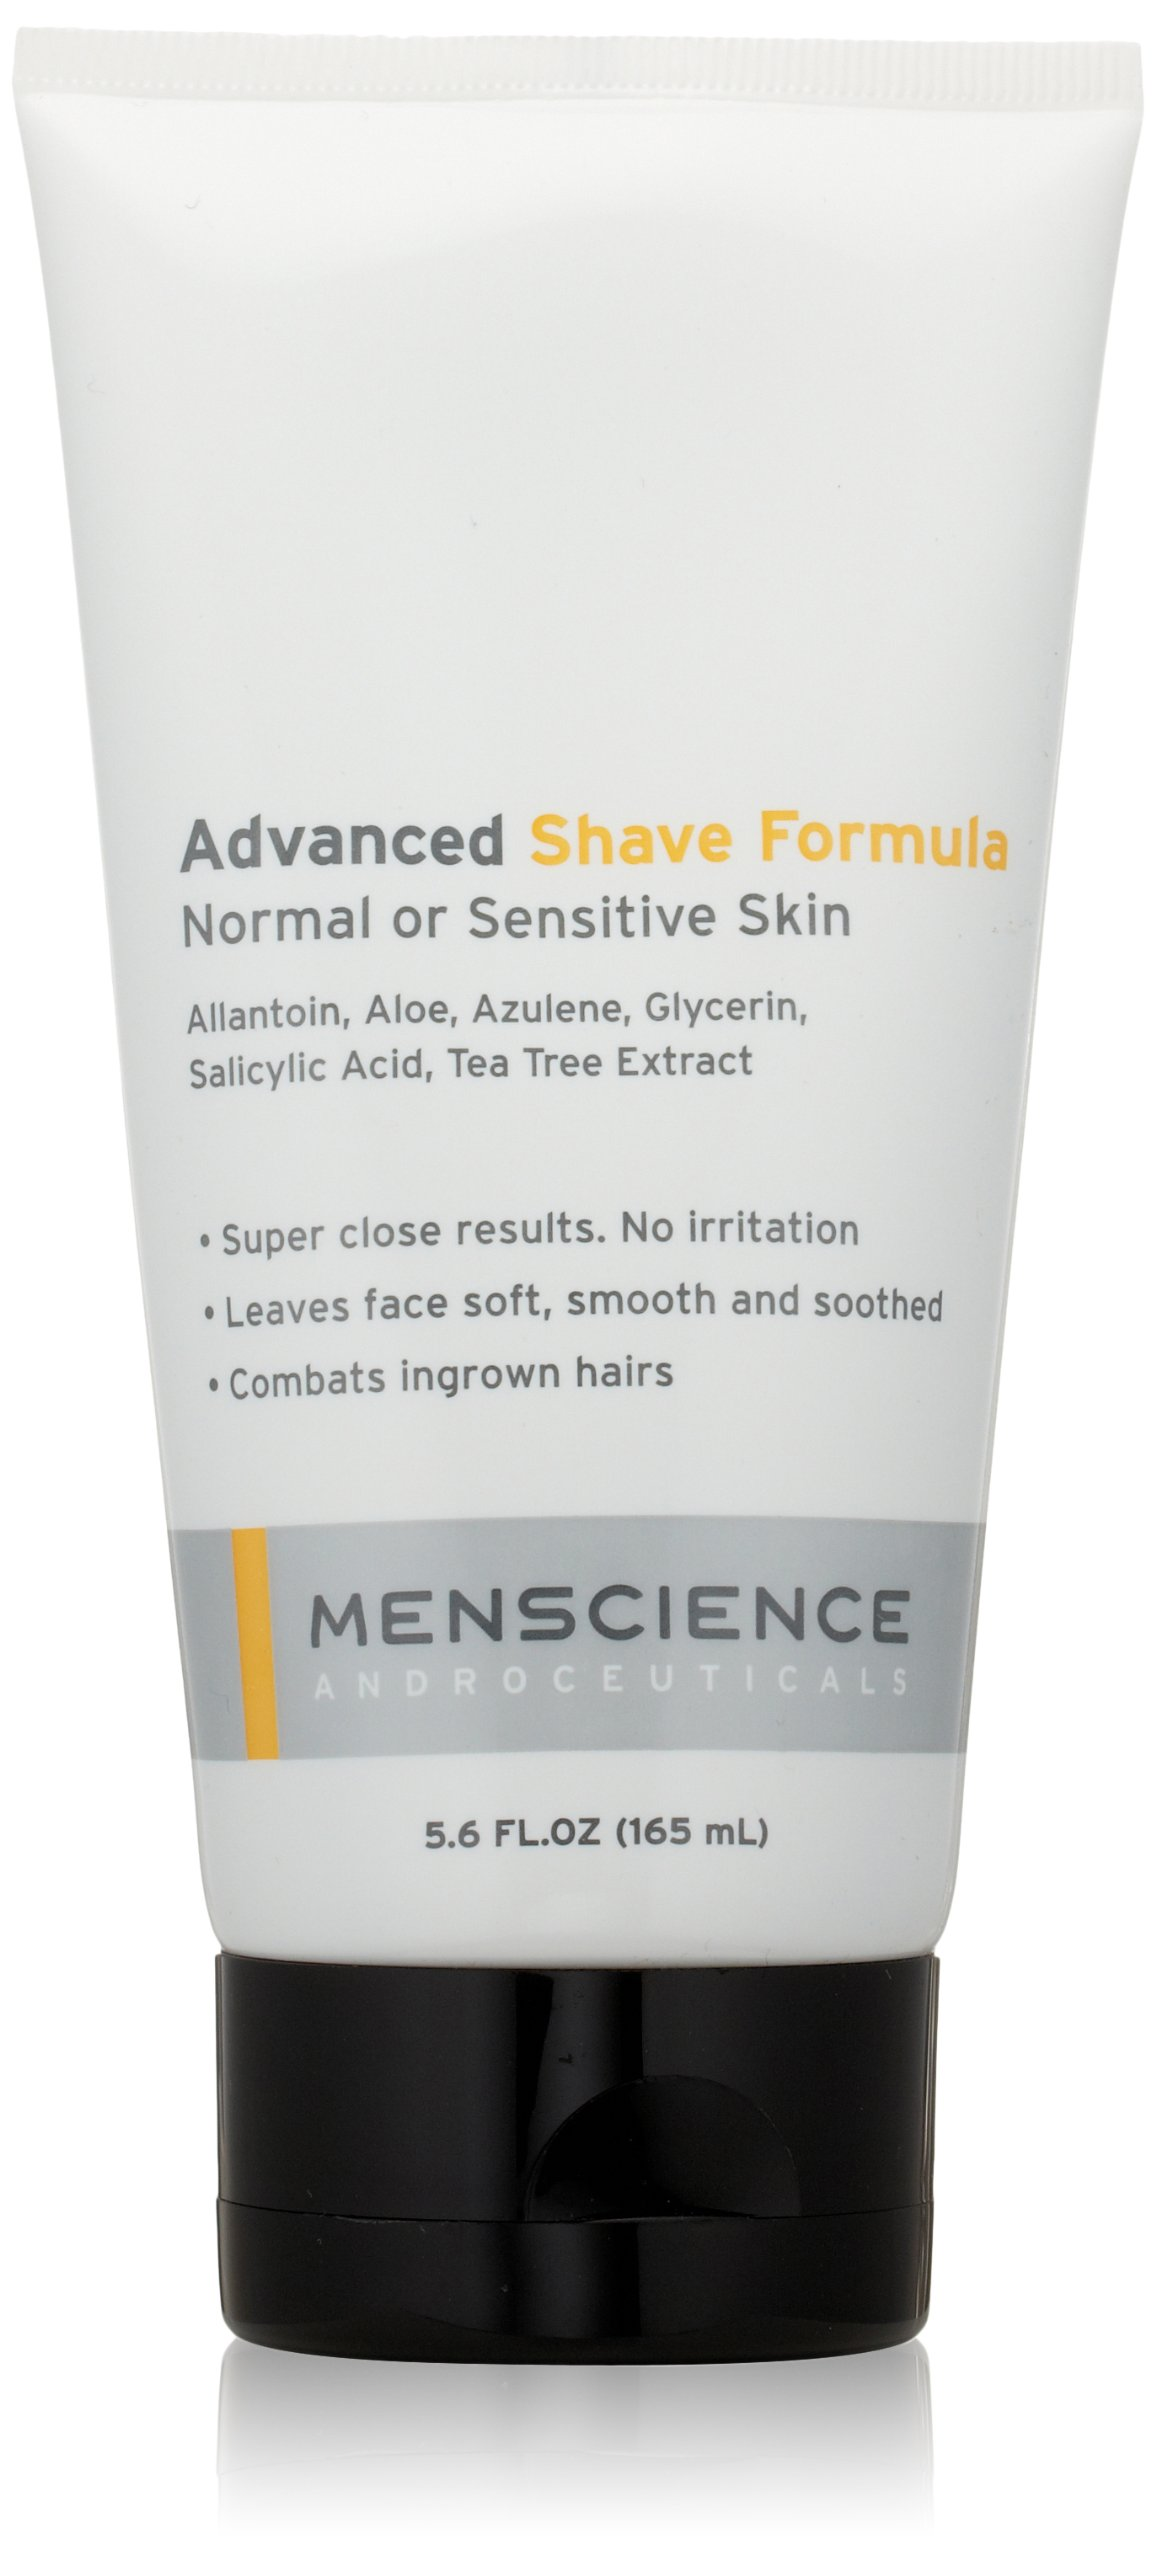 MenScience Androceuticals Advanced Shave Formula